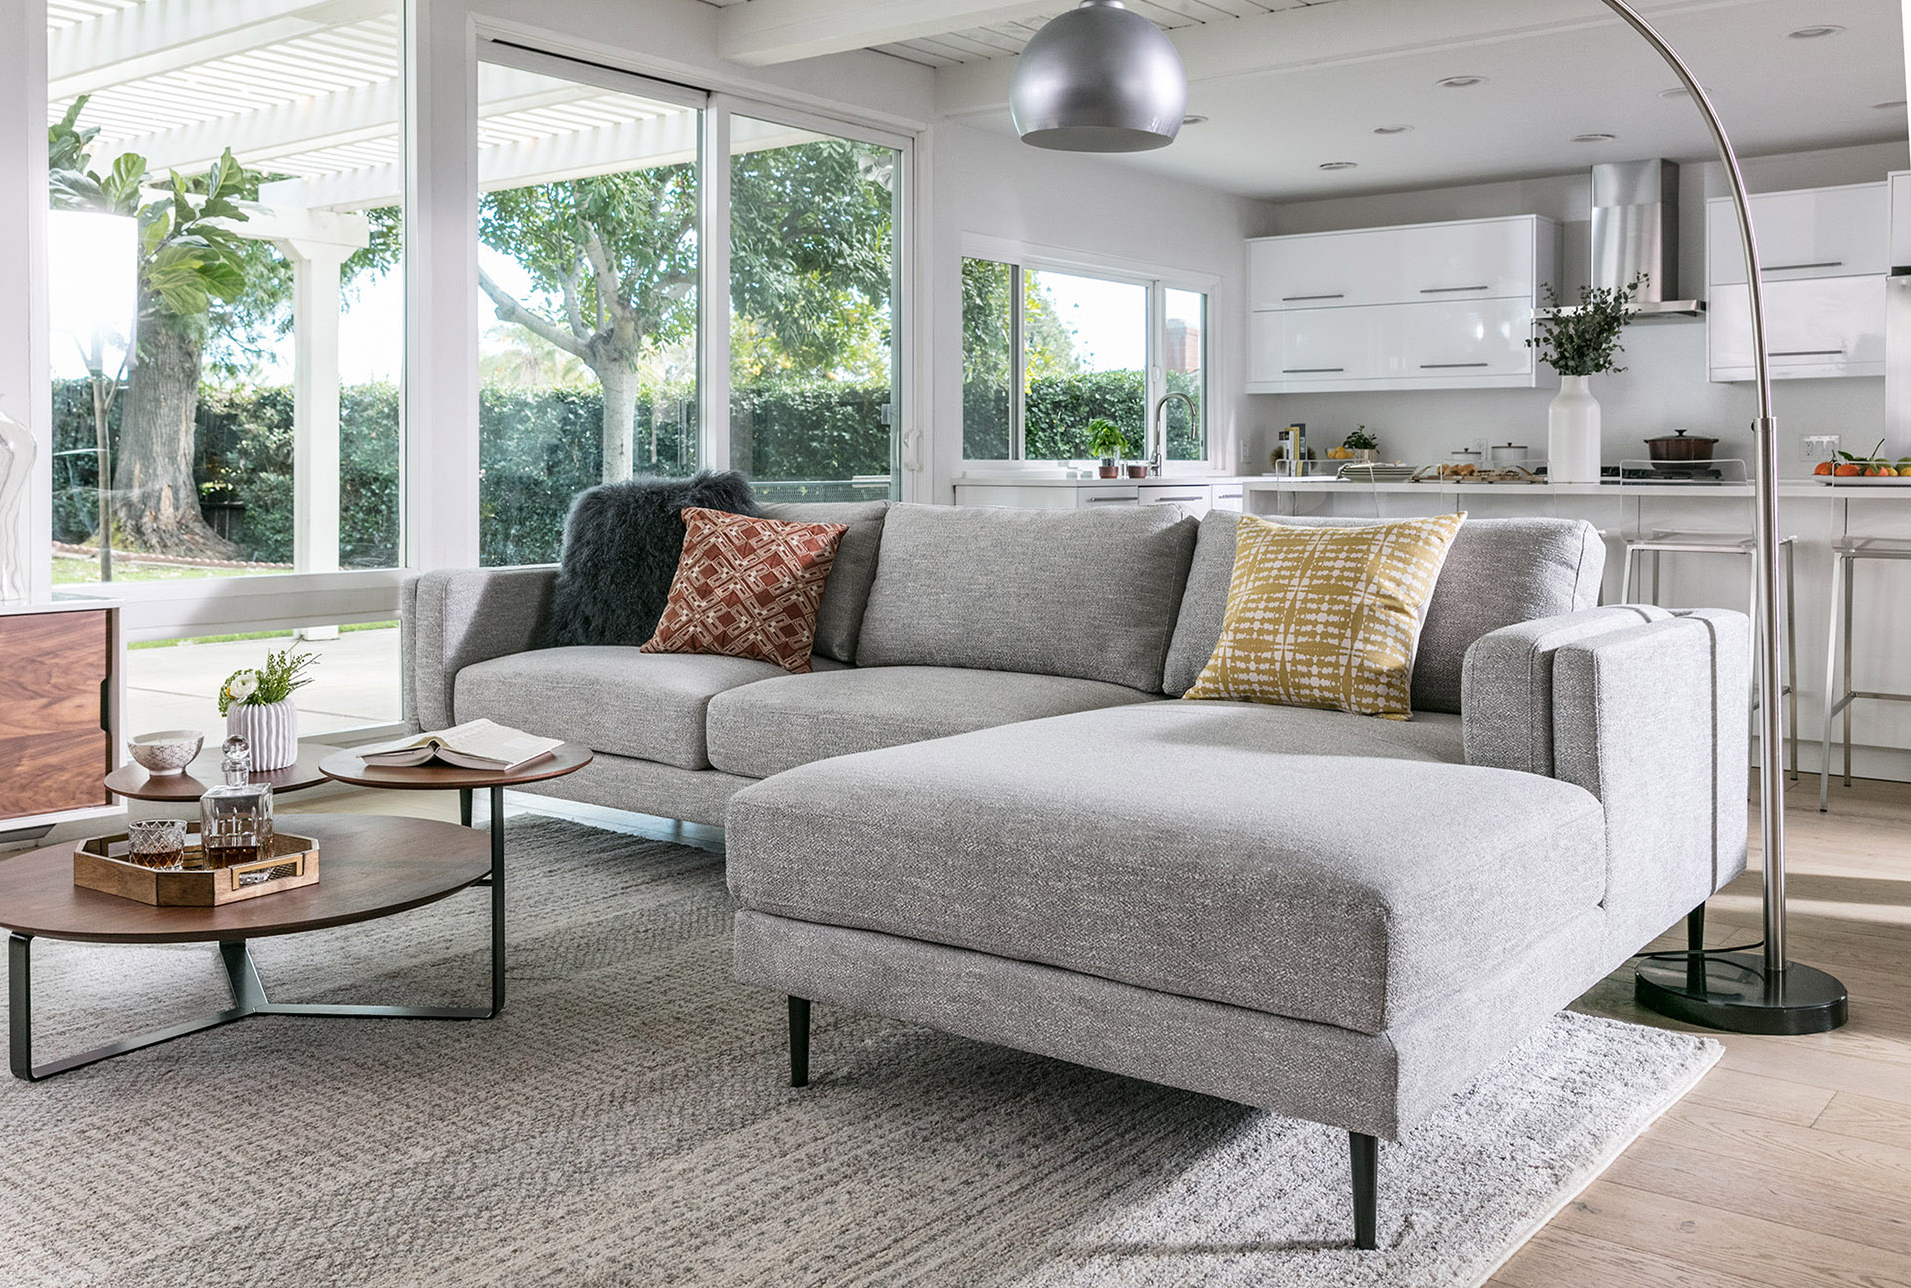 Aquarius Light Grey 2 Piece Sectional W/laf Chaise (View 5 of 20)